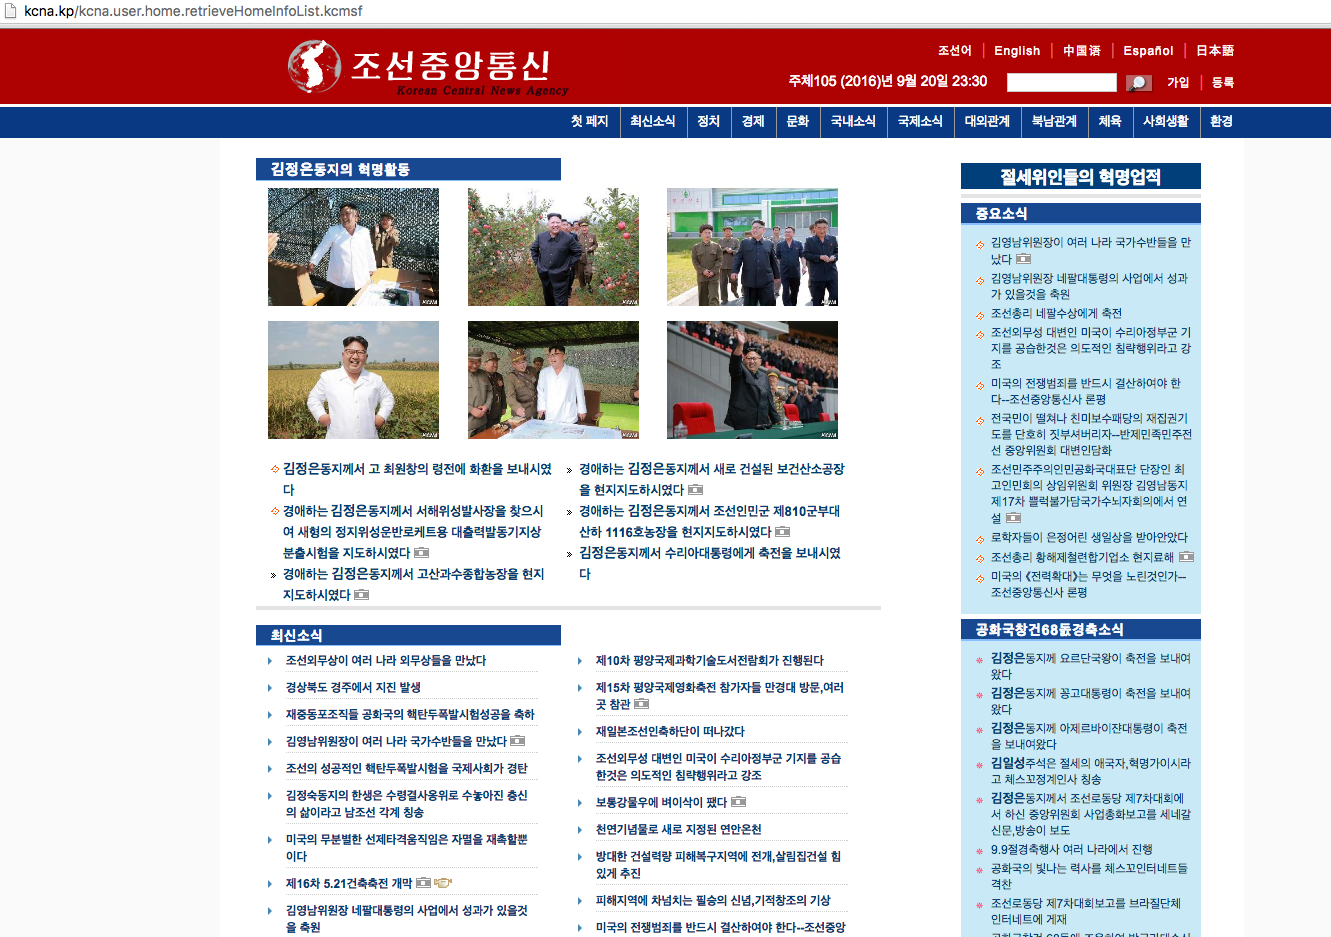 North Korea website that was leaked